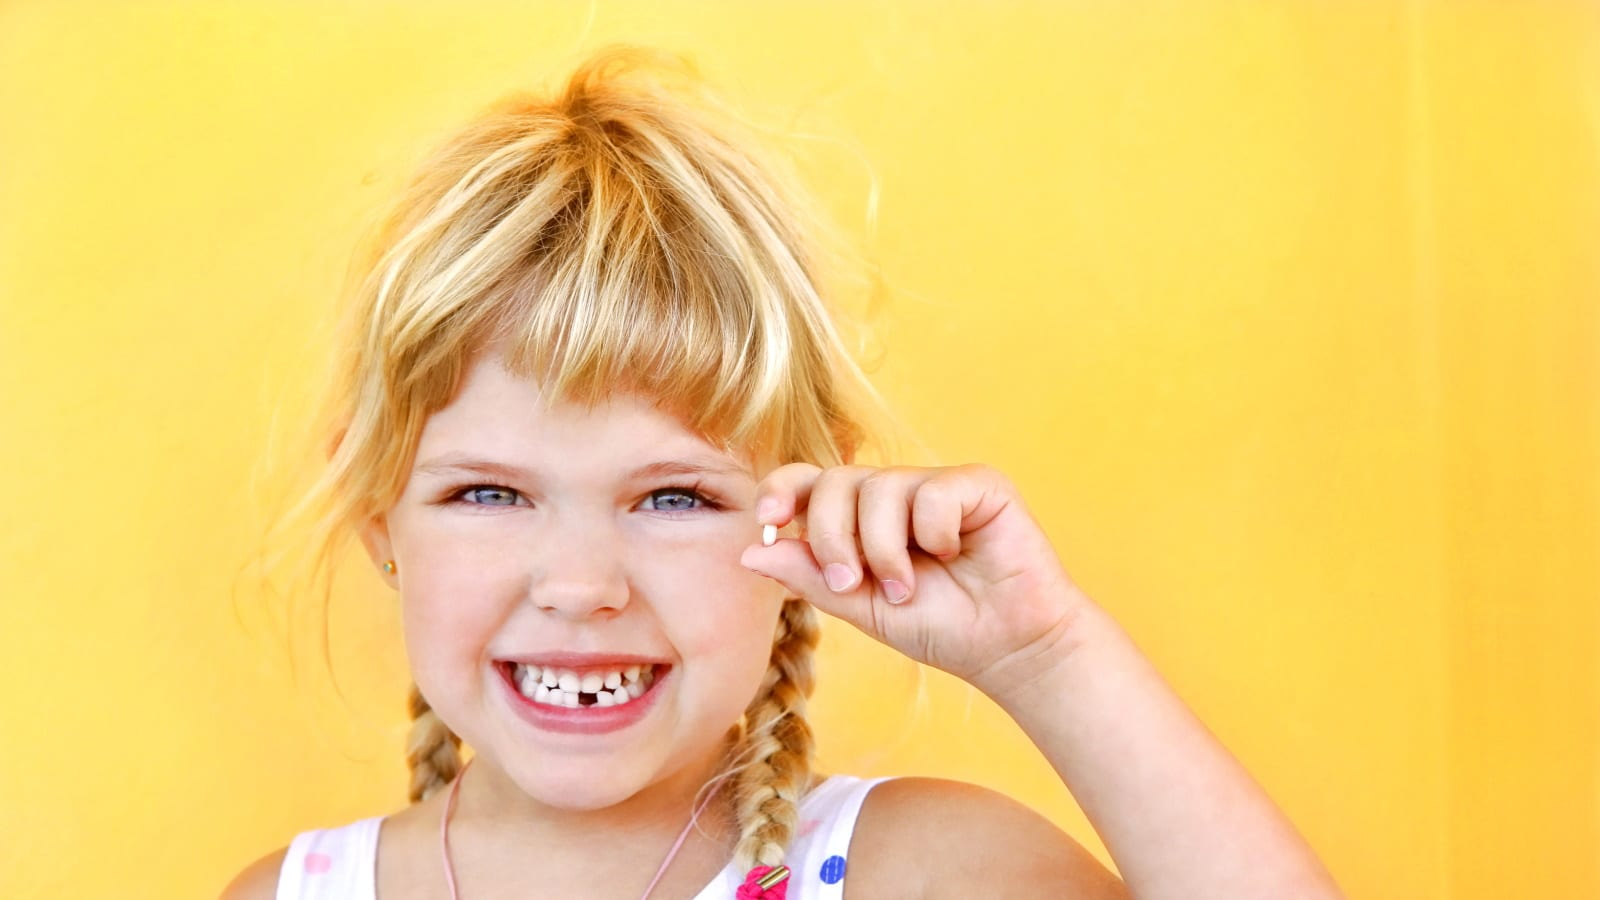 Child holding a baby tooth